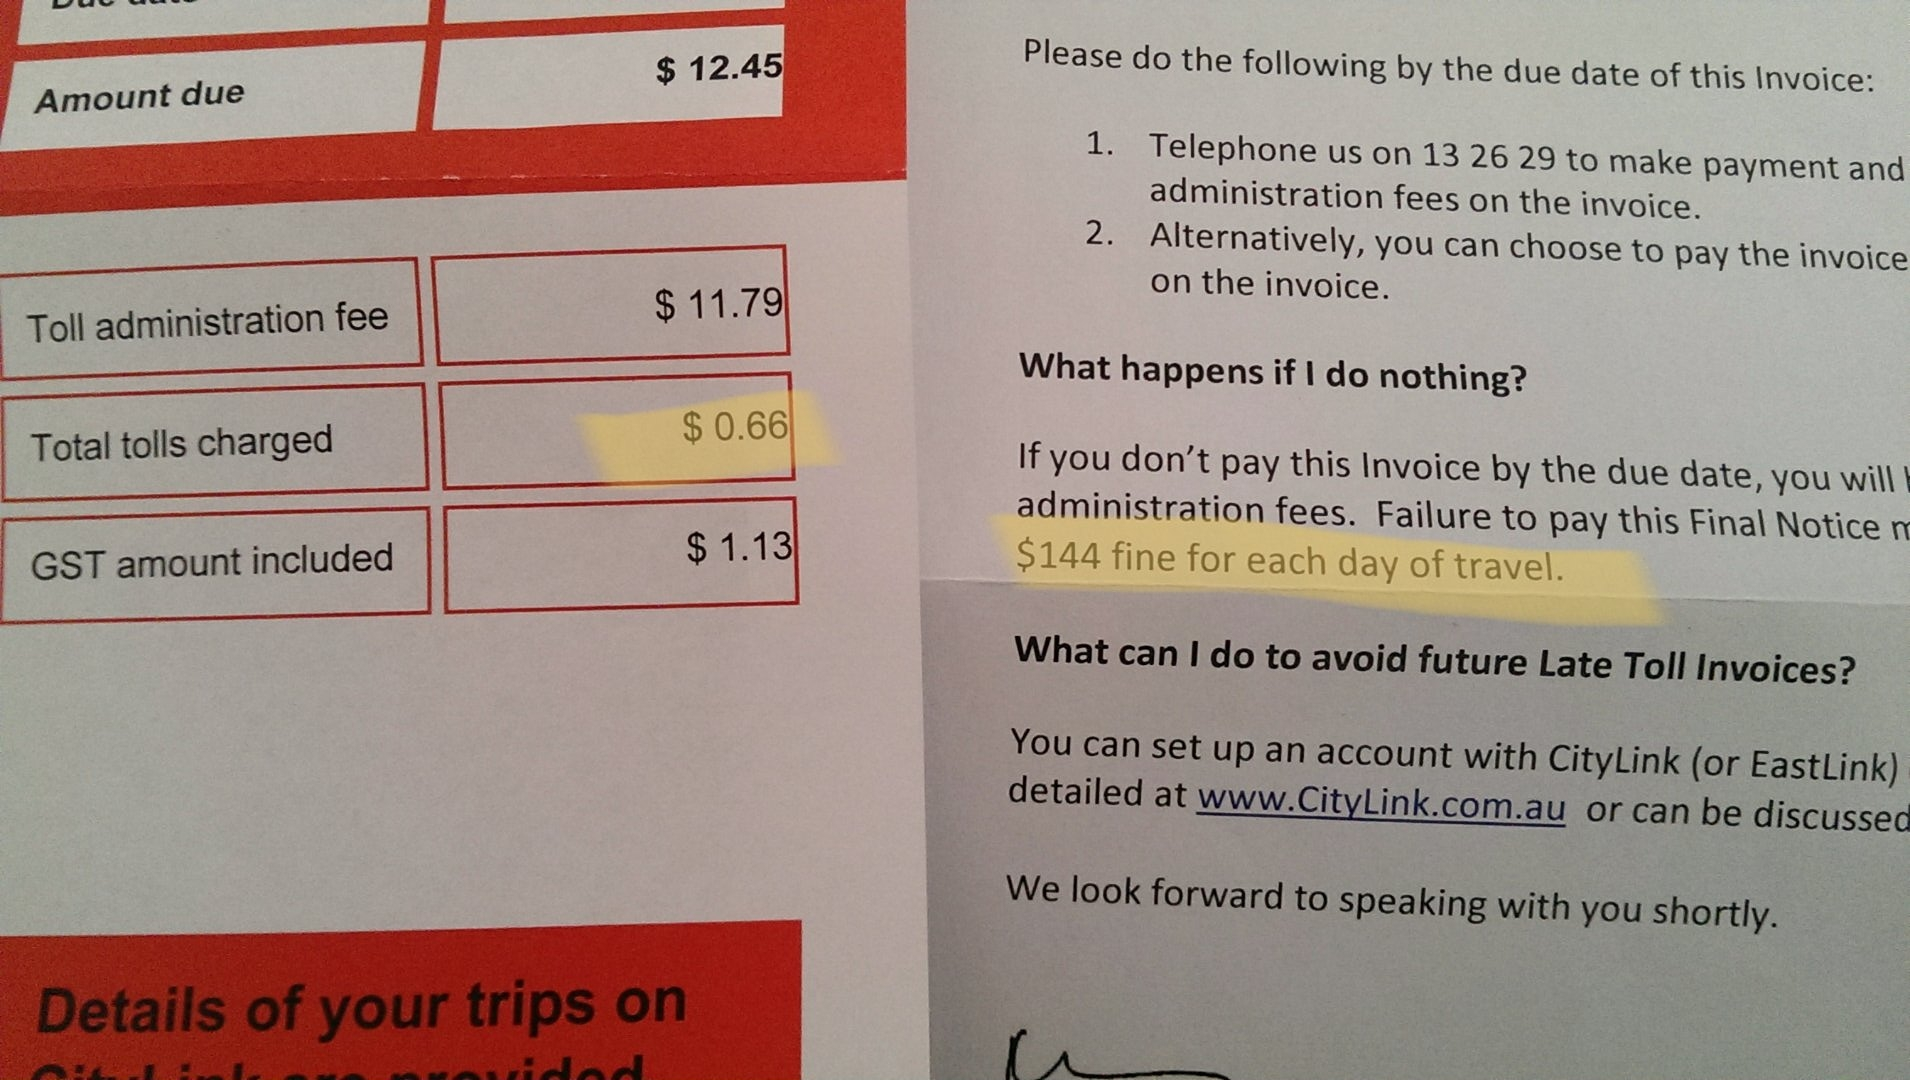 Citylink Late Toll Invoice Cost